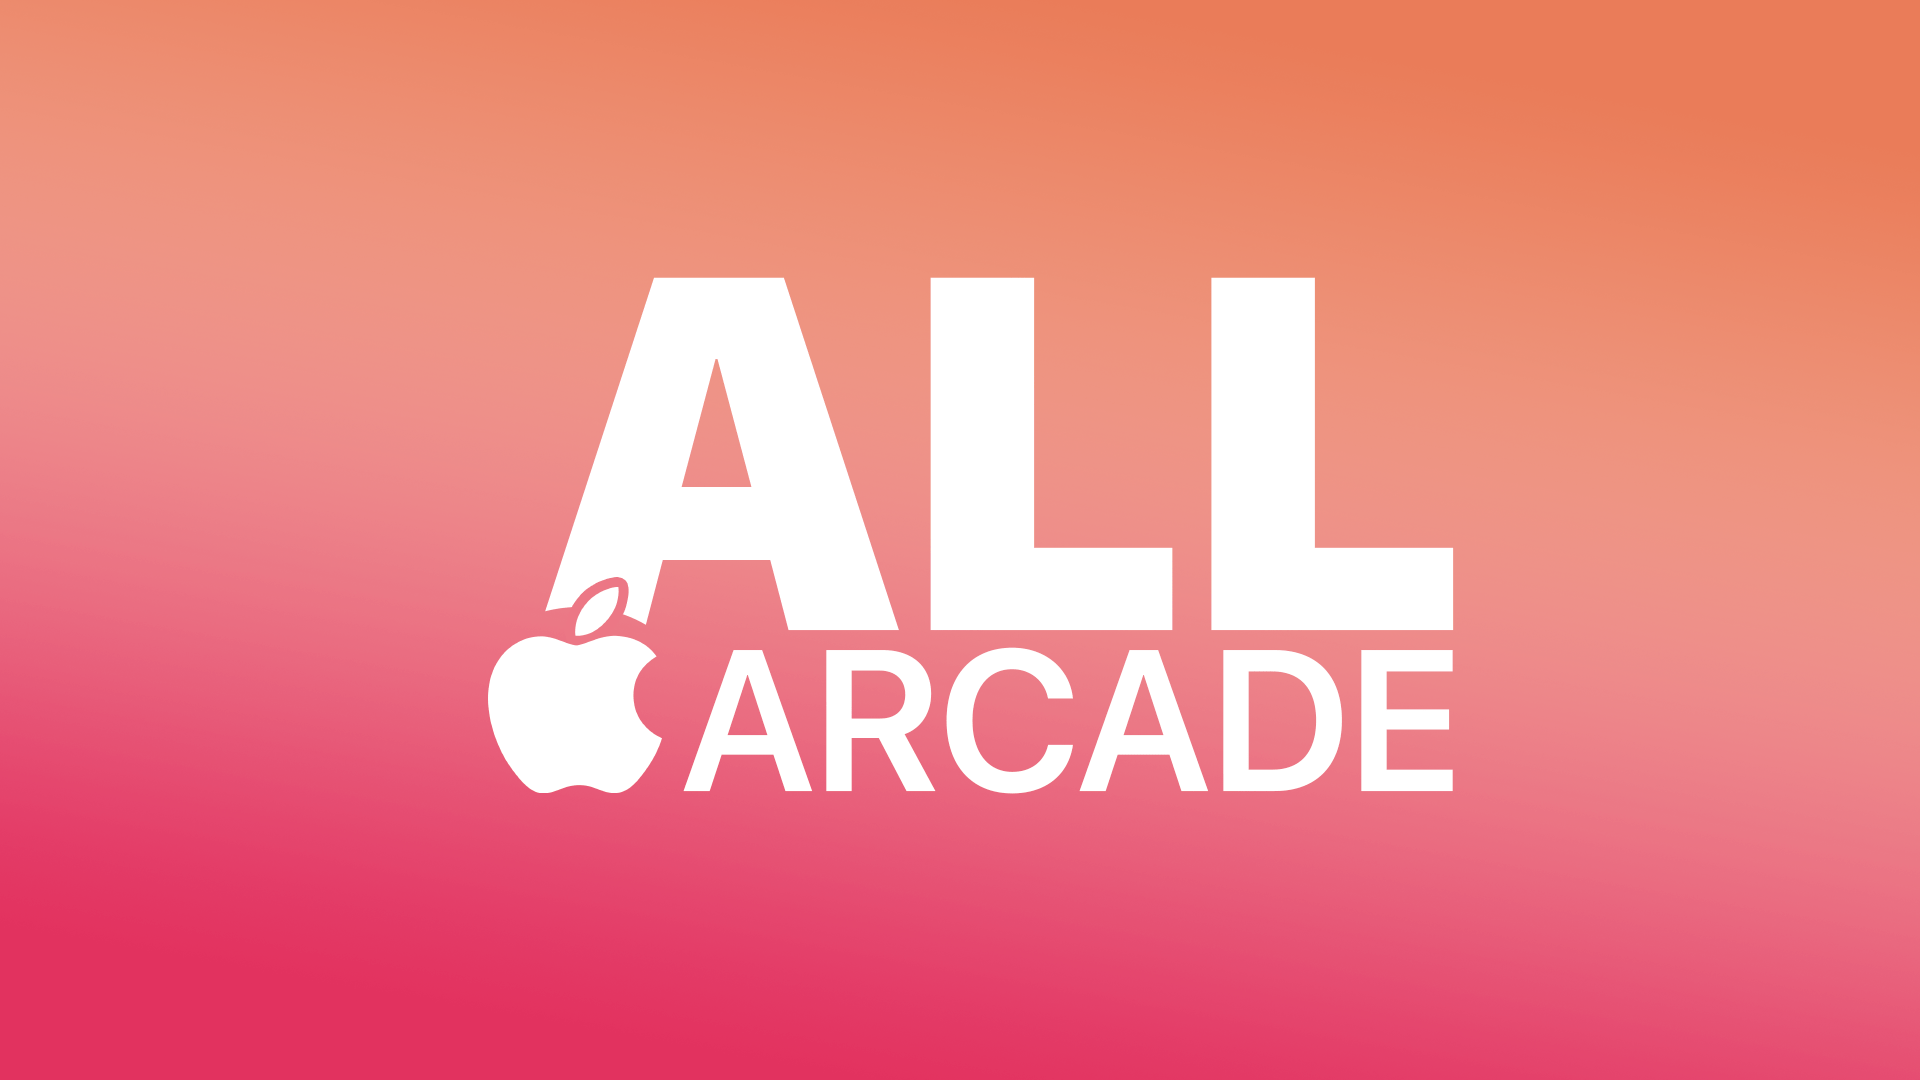 Apple Arcade updates Grindstone, Sociable Soccer and Explottens to play this weekend - CNET